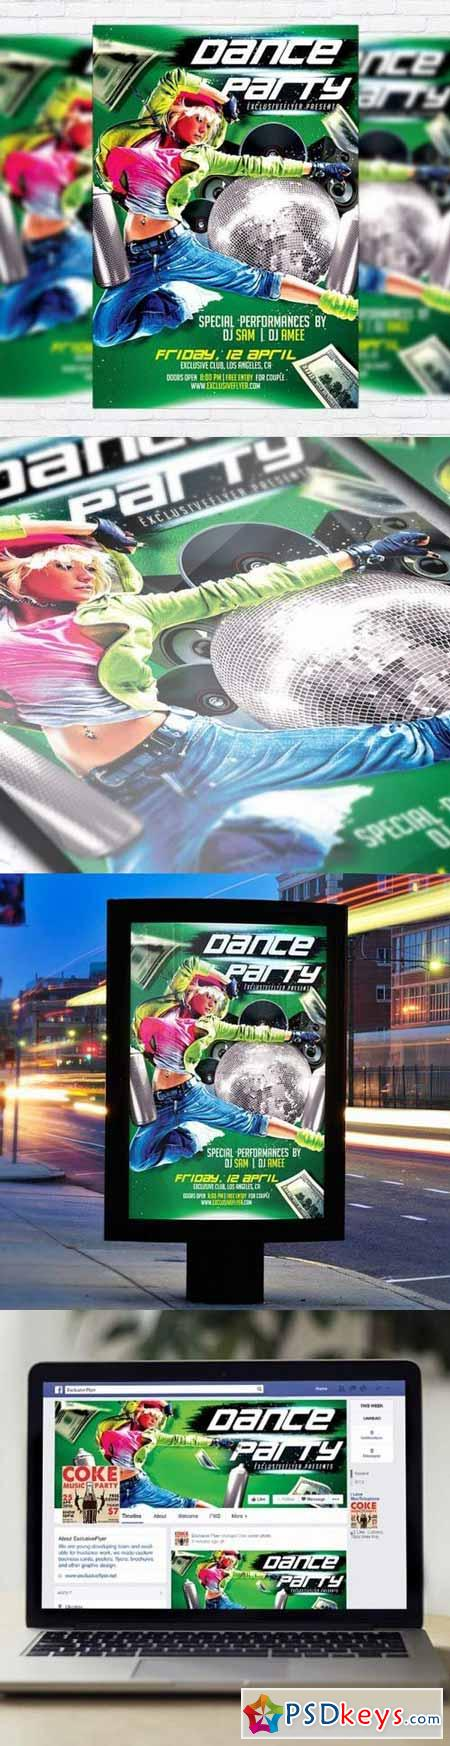 Dance Party Flyer PSD Template + Facebook Cover